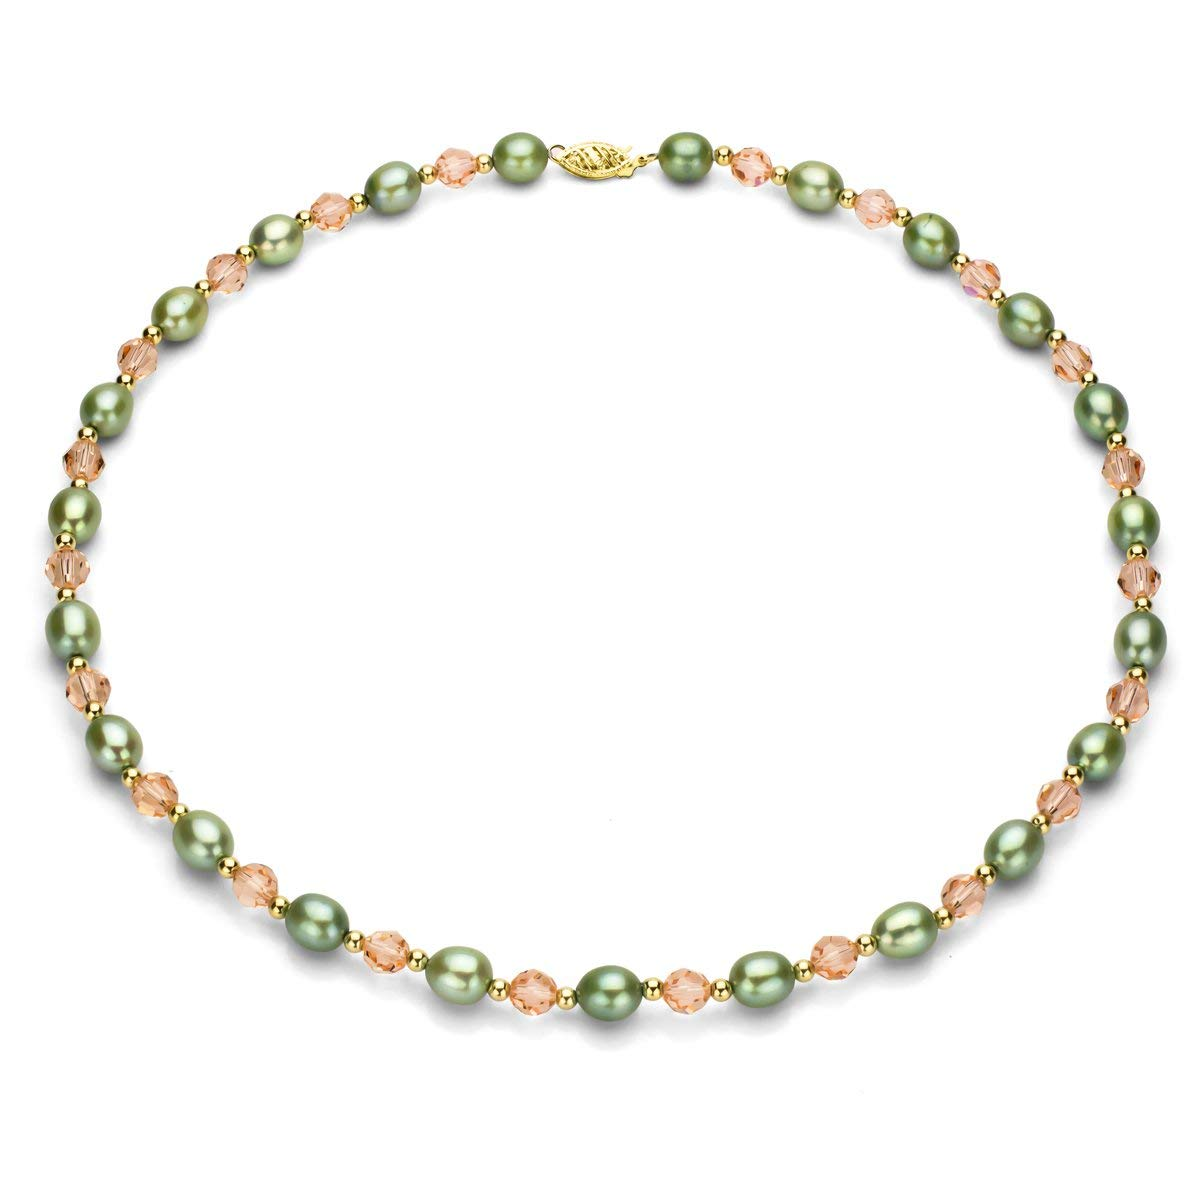 """La Regis Jewelry 14K Yellow Gold 7-7.5mm Dyed-green Freshwater Cultured Pearl, Simulated Dyed-pink Crystal Necklace, 17"""""""